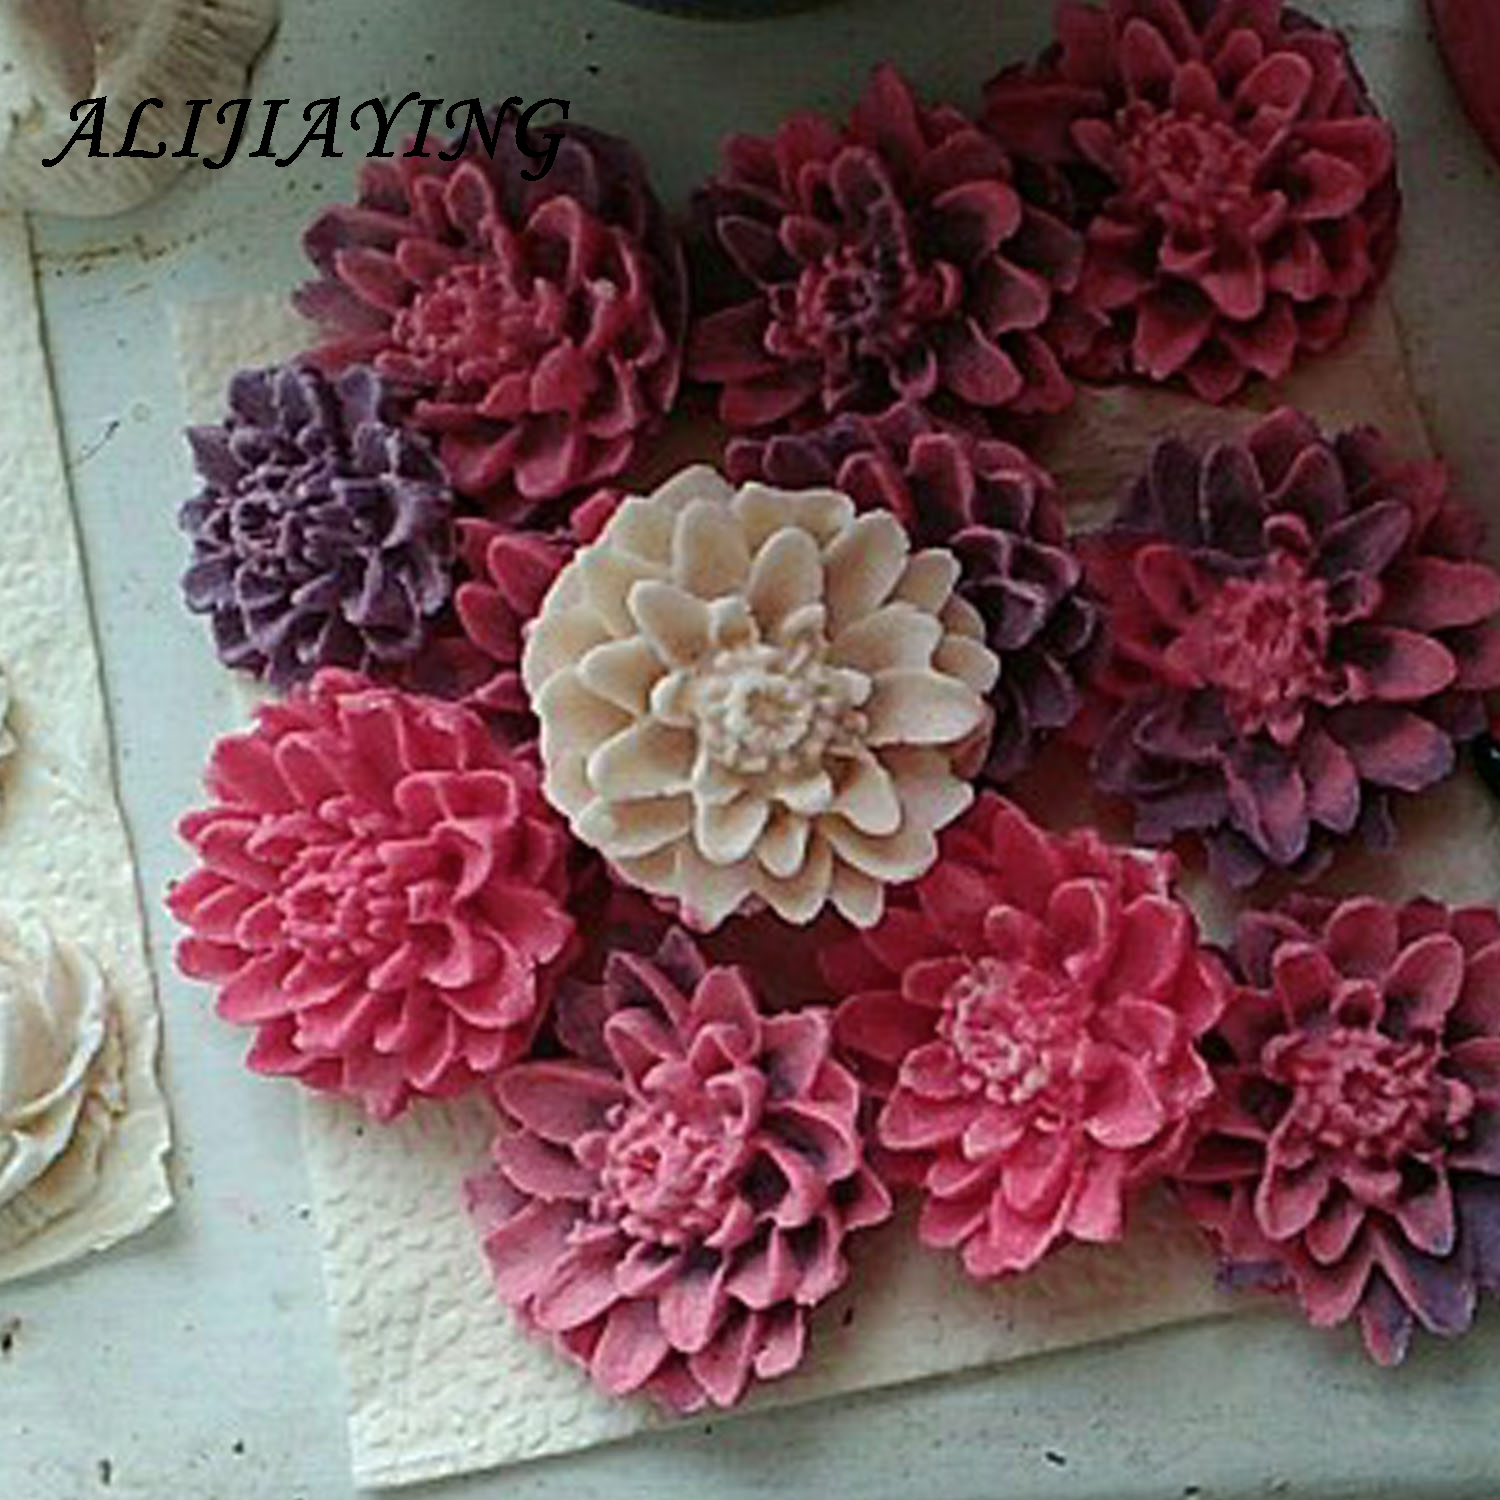 3D Chrysanthemums Soap Mold Resin Clay Chocolate Candy Silicone Cake Mould Flower Fondant Cake Decorating Tools D0158